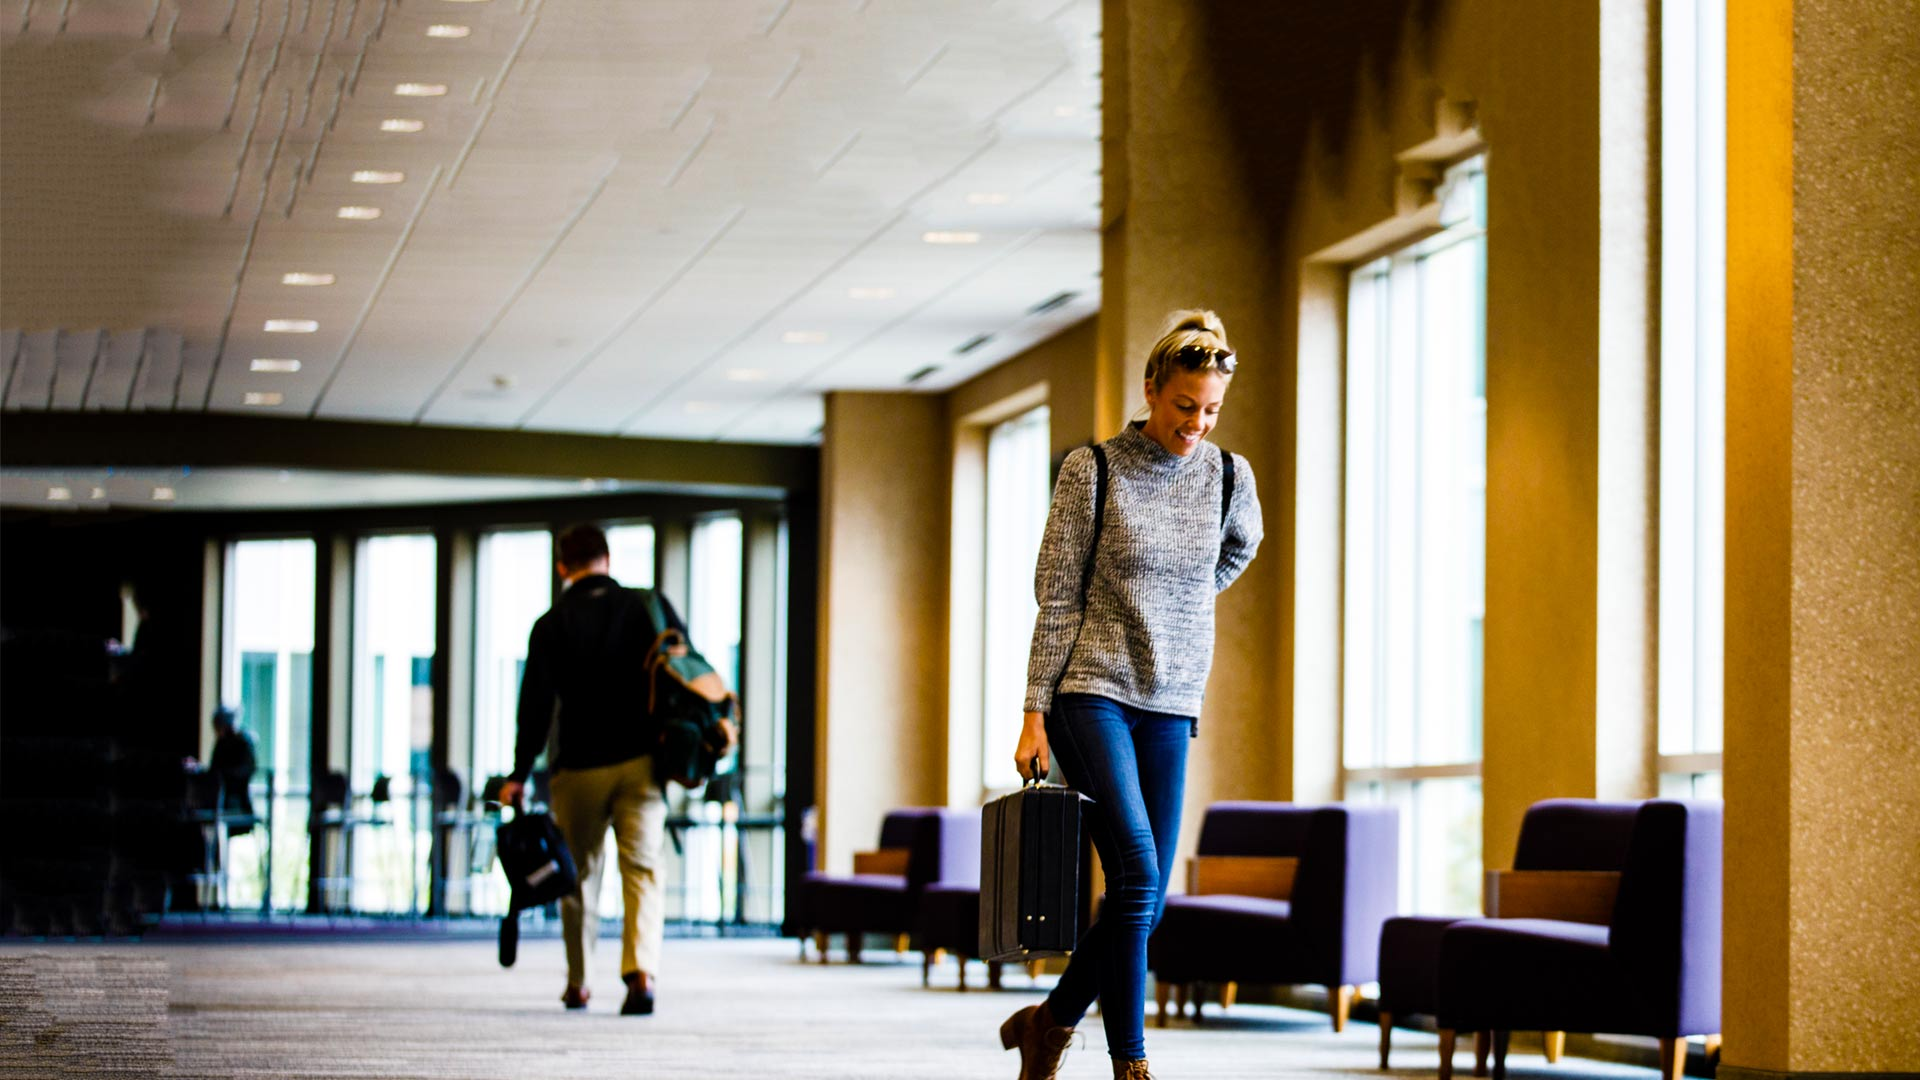 A student walks through the skyway connecting Schulze Hall with Terrence Murphy Hall